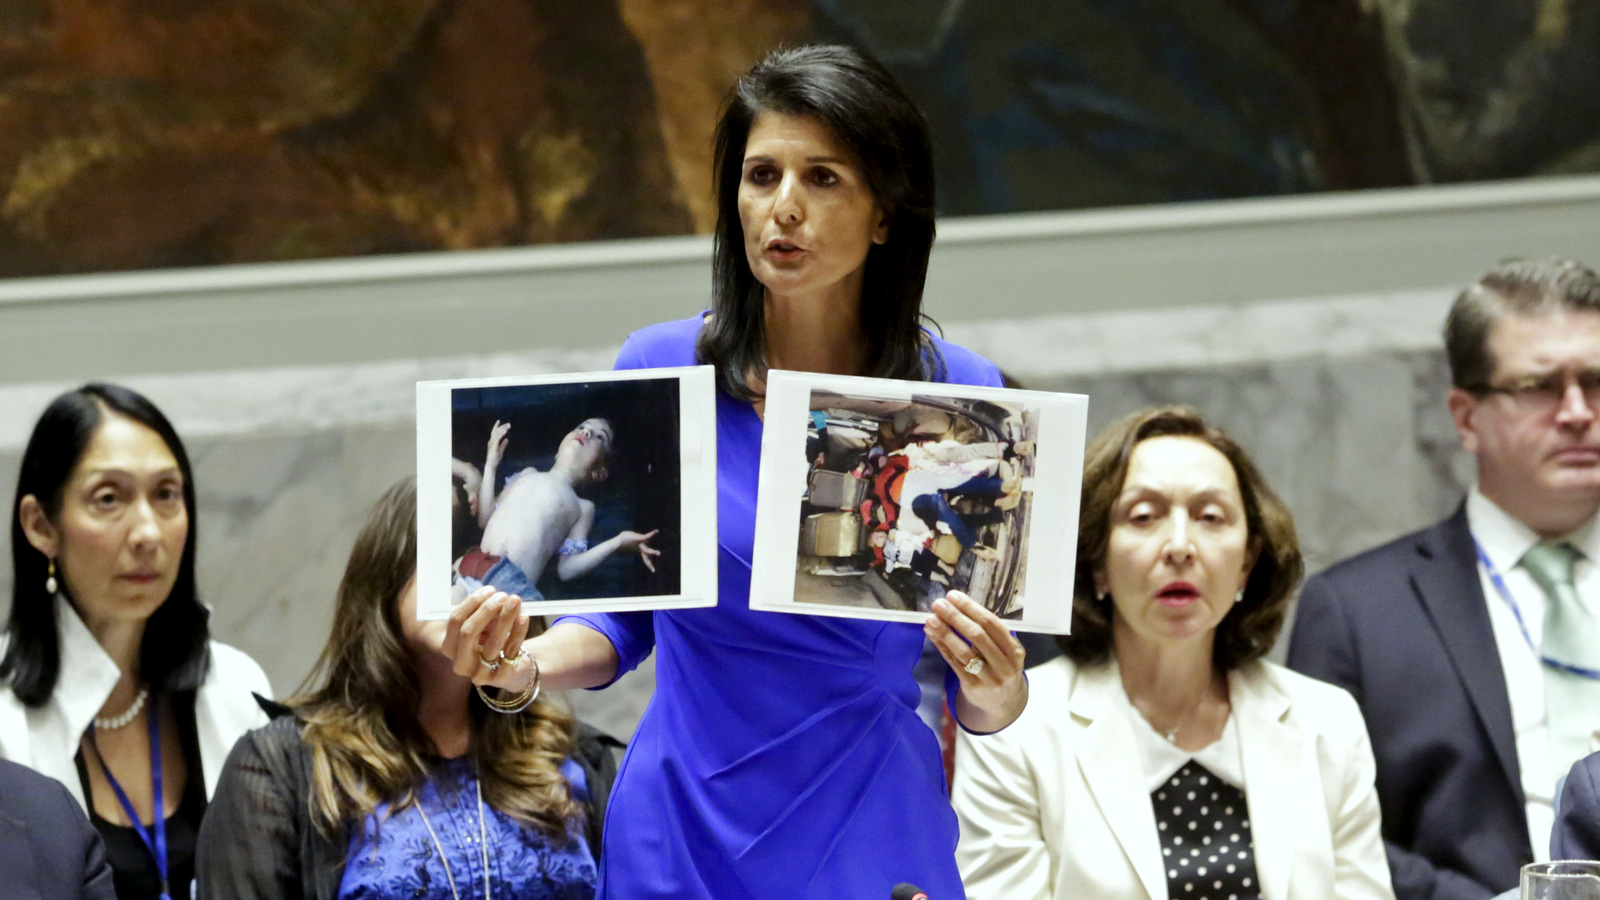 Nikki Haley, United States' Ambassador United Nations, shows pictures of Syrian victims of chemical attacks as she addresses a meeting of the Security Council on Syria at U.N. headquarters, April 5, 2017. (AP/Bebeto Matthews)